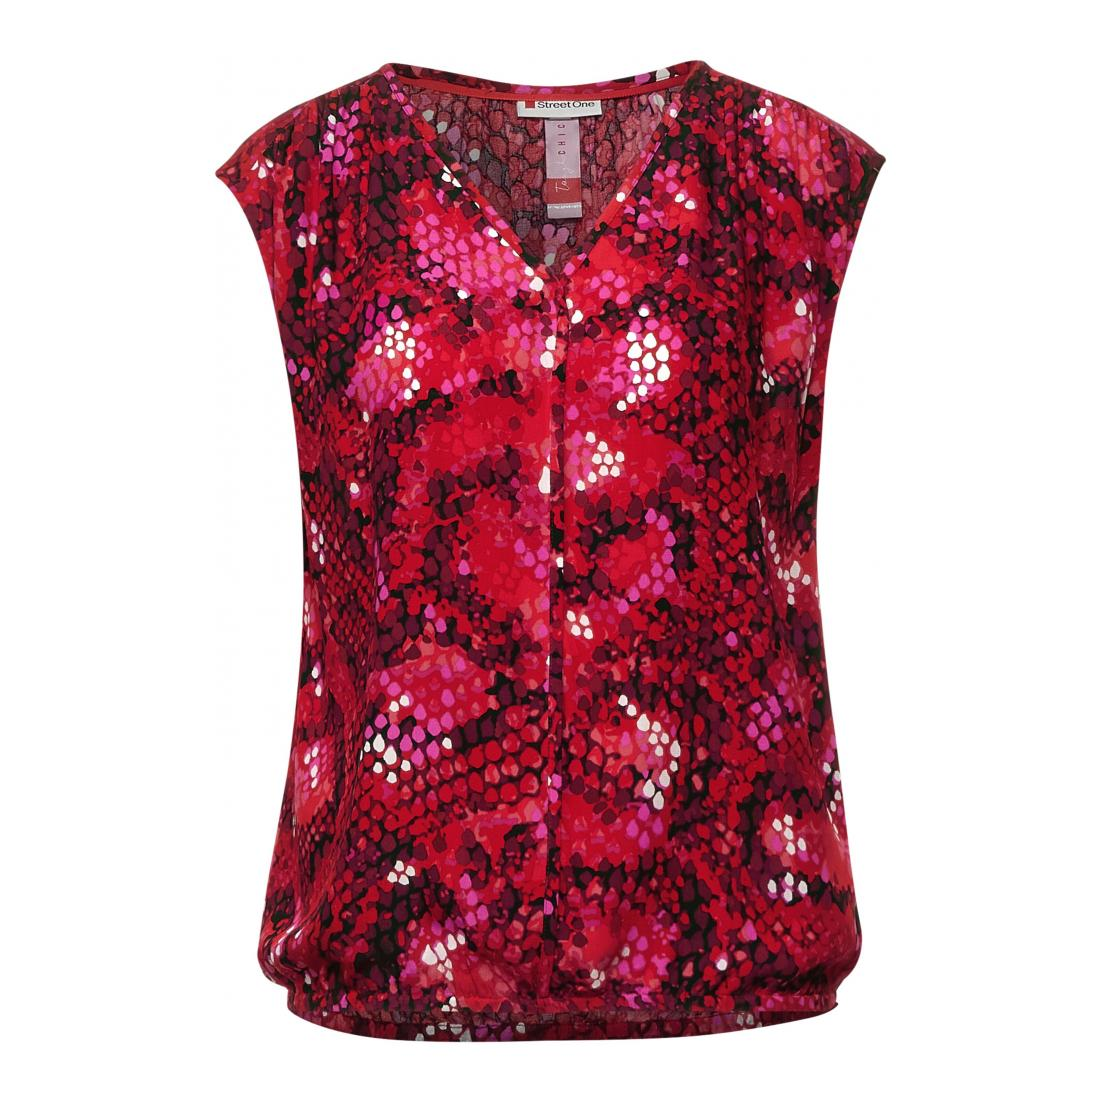 Street One Tops Damen LTD QR V-neck blouse w bi